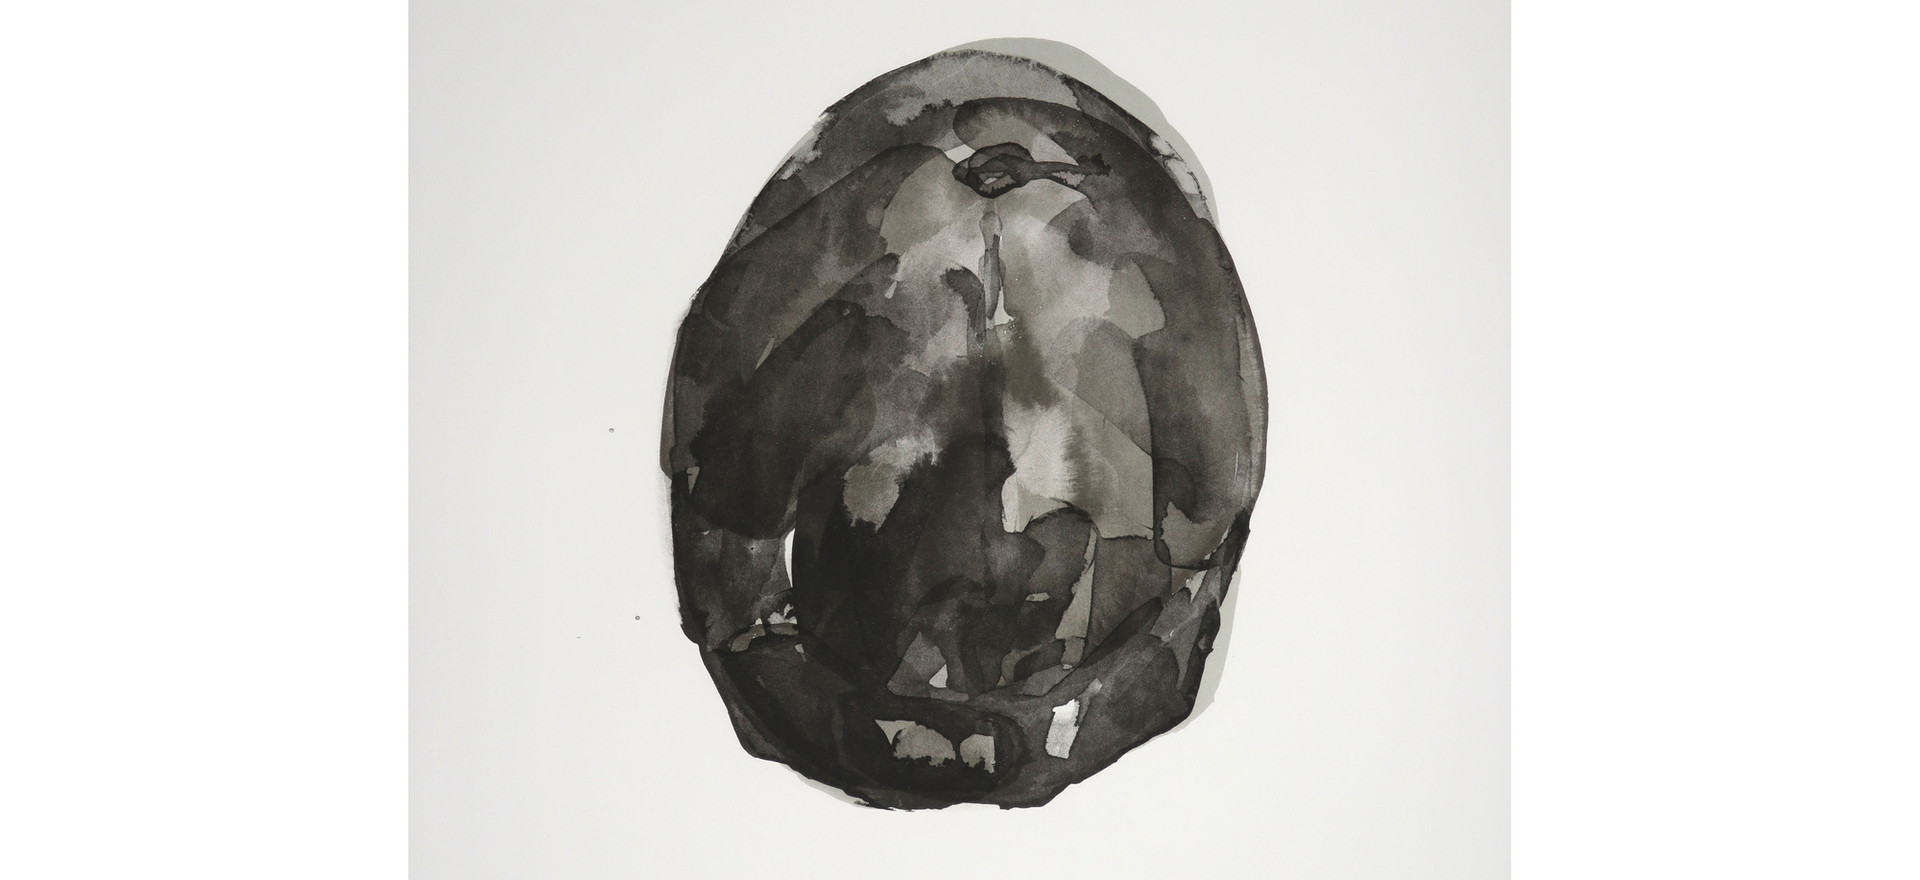 'Articulated (back)', 2017, lithograph, 53. 4 x 43 cm